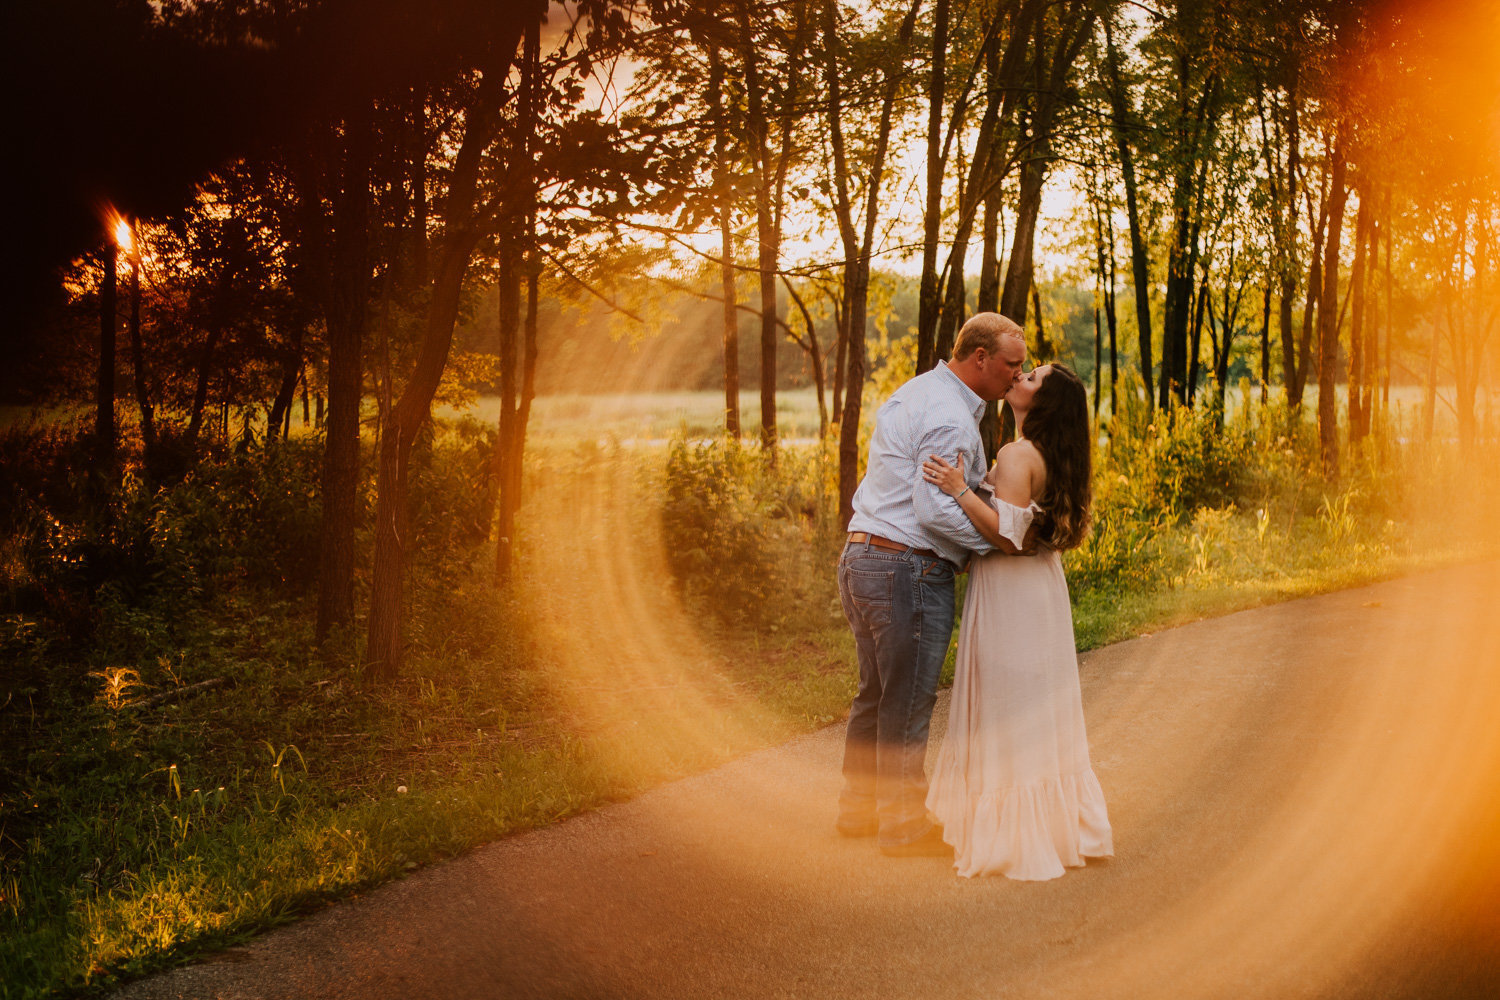 Golden-dancing-engagement-session-prophetstown-state-park-29